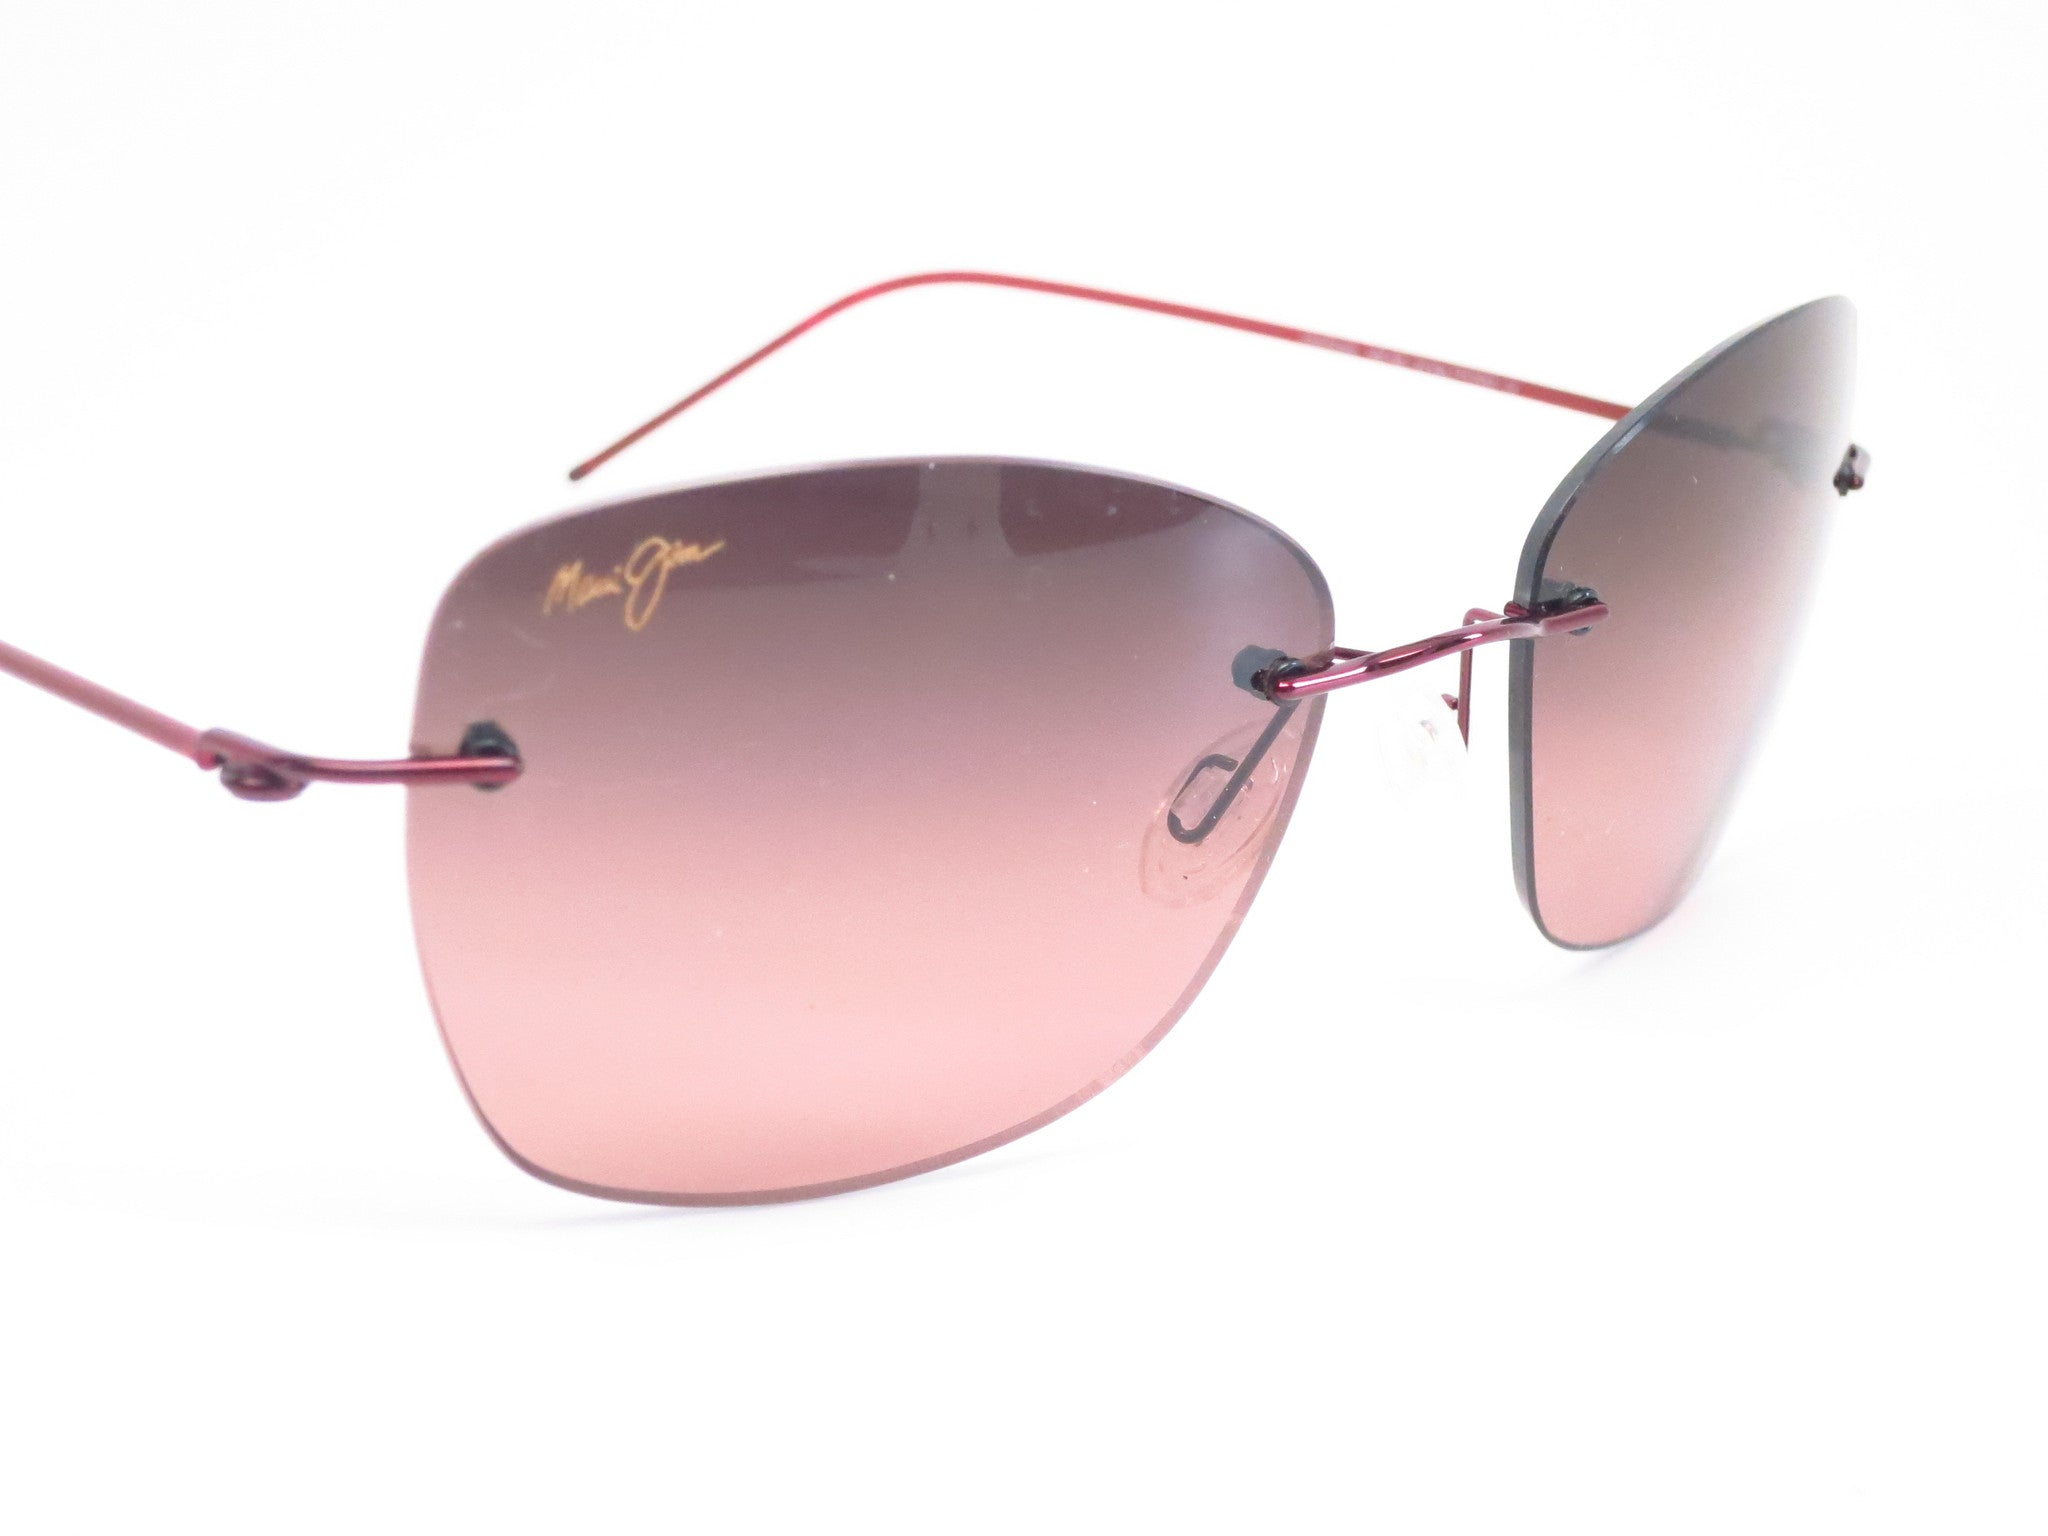 02725135eb41 ... Maui Jim Apapane MJ RS717-07 Burgandy/Red sleeve Polarized Sunglasses -  Eye Heart ...